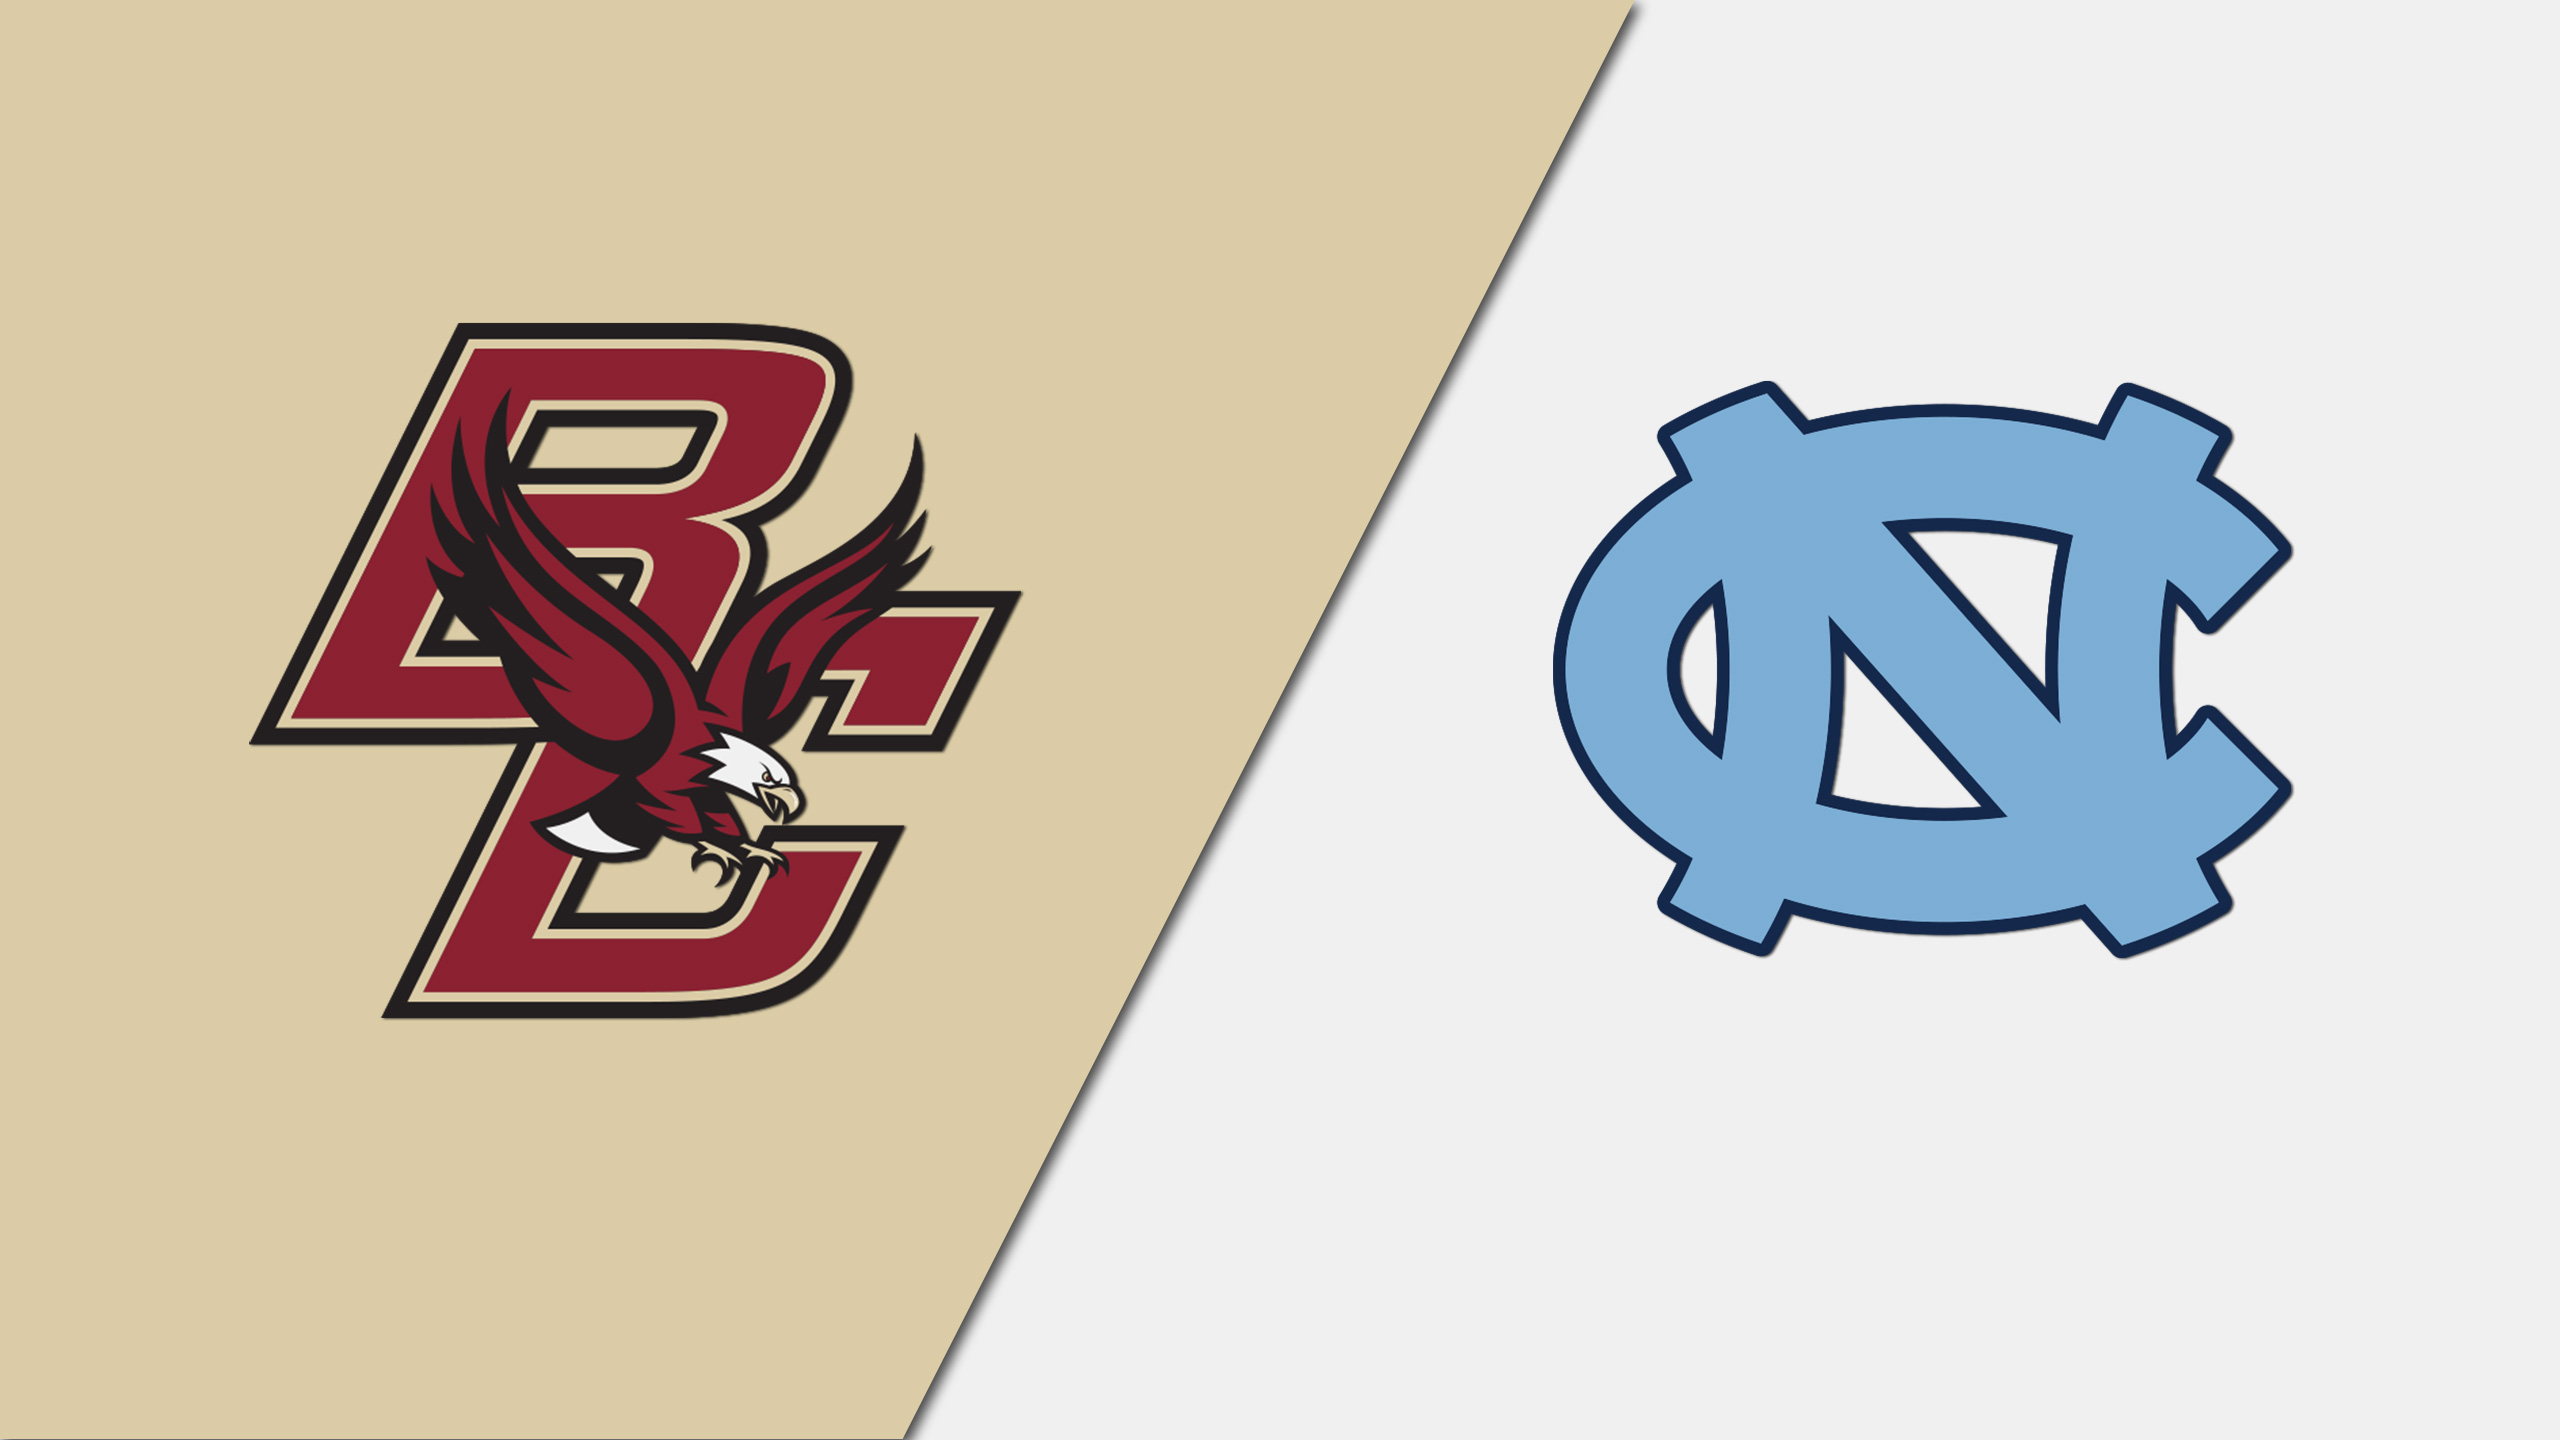 Boston College vs. North Carolina